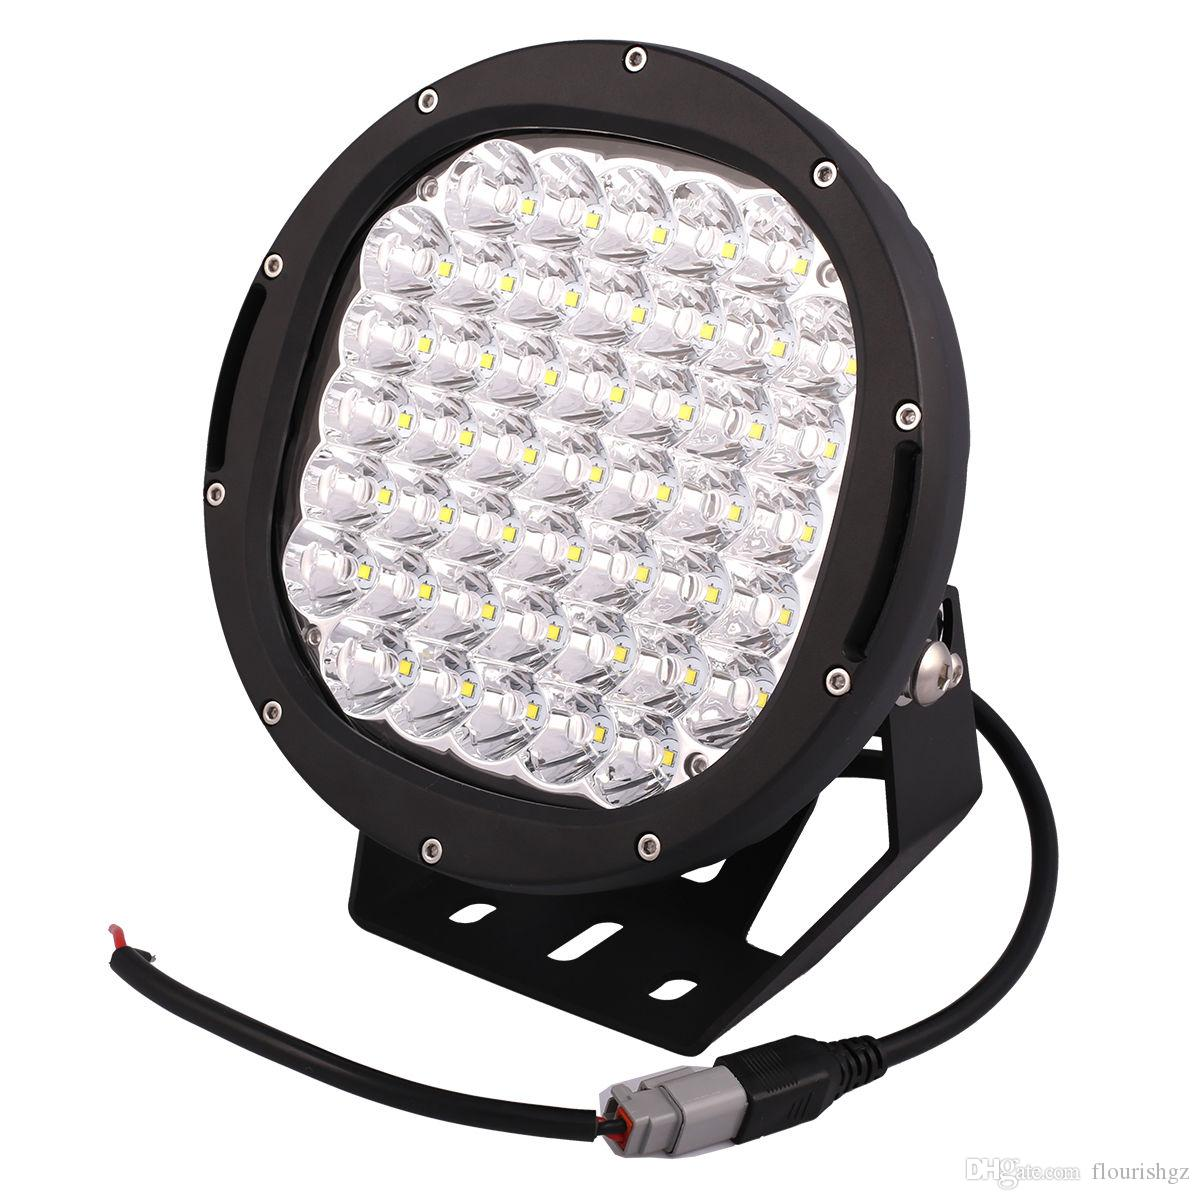 "DHL 10"" 225W 22500lm Cree Chips LED Driving Work Light Offroad SUV ATV Spot Pencil Beam 45LED*5W Power Bright Flood Protective Cover"